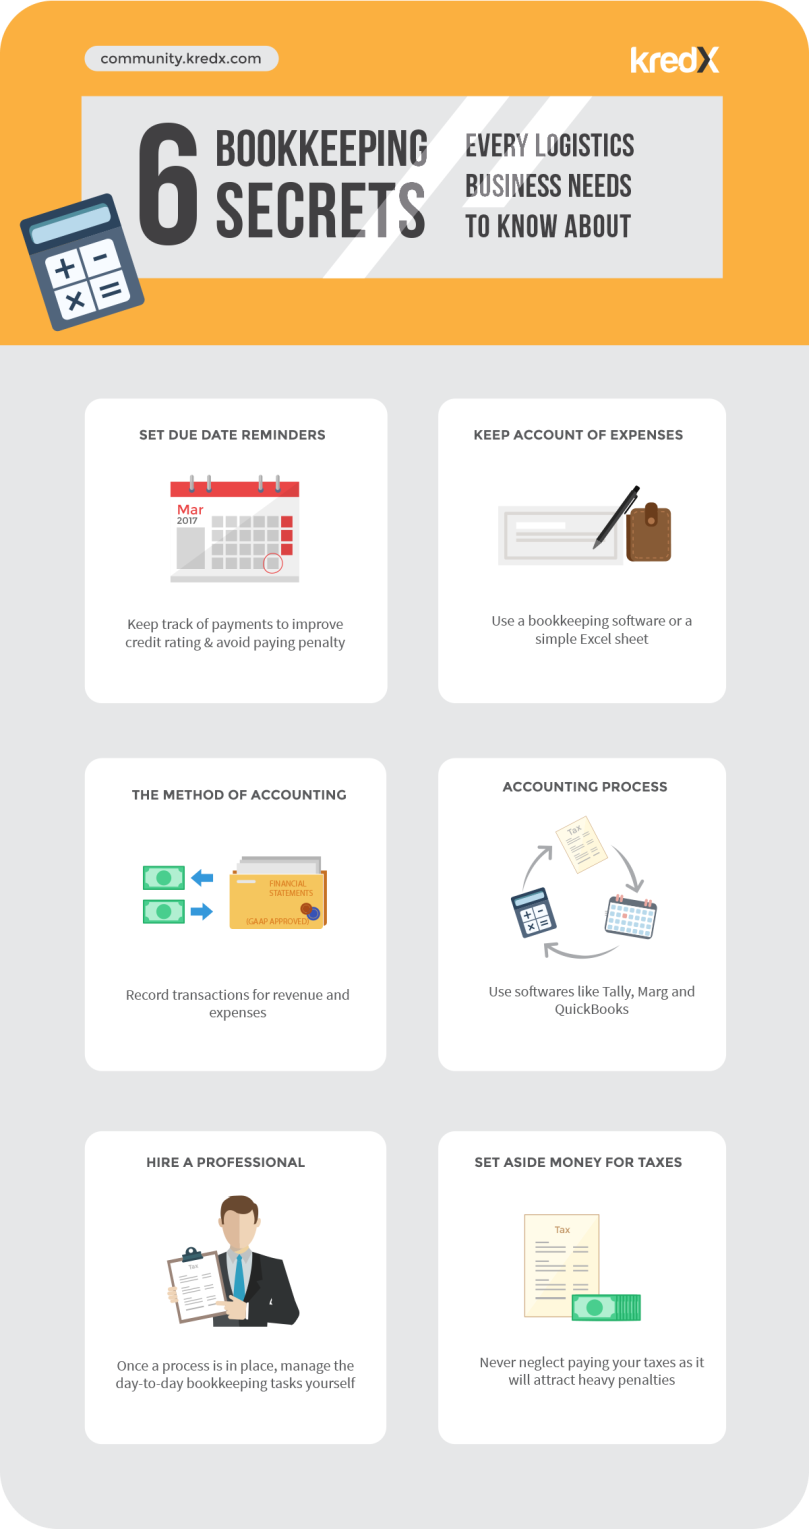 Infographic on bookkeeping secrets for logistics businesses